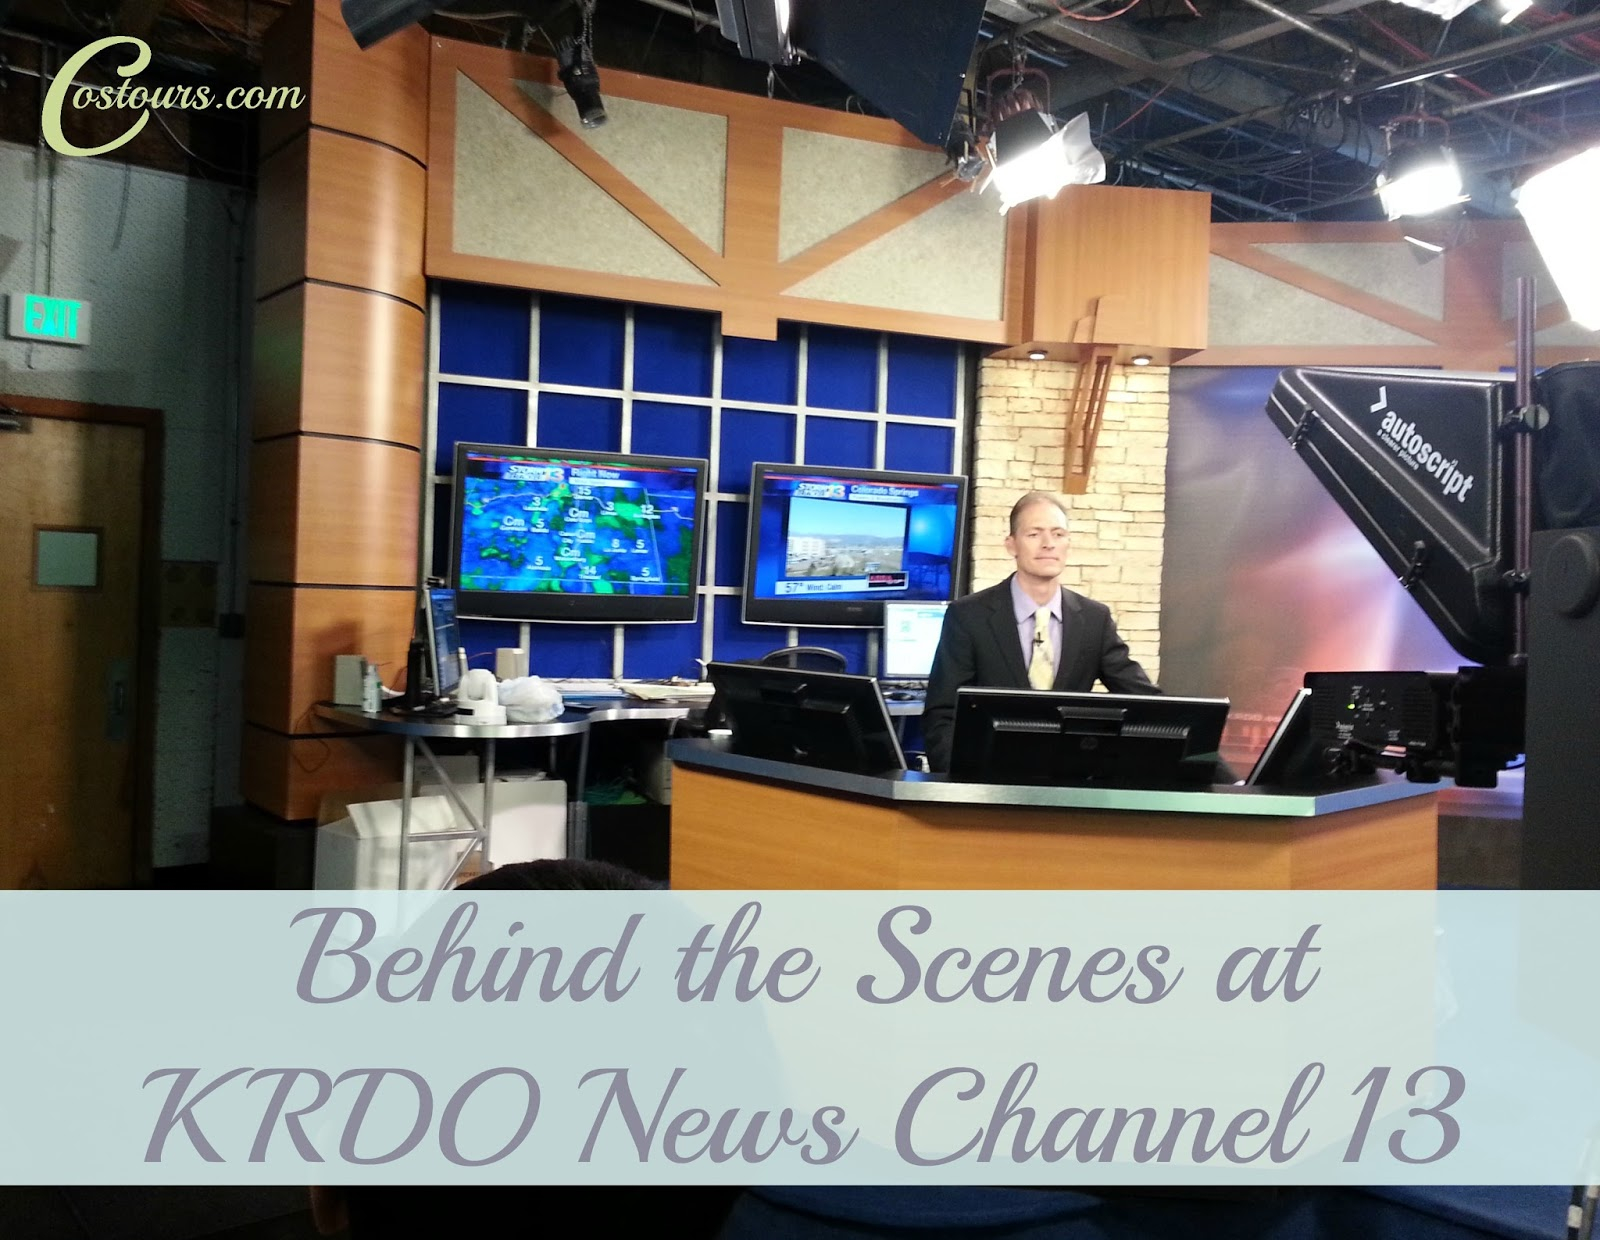 Behind the Scenes at KRDO News Channel 13